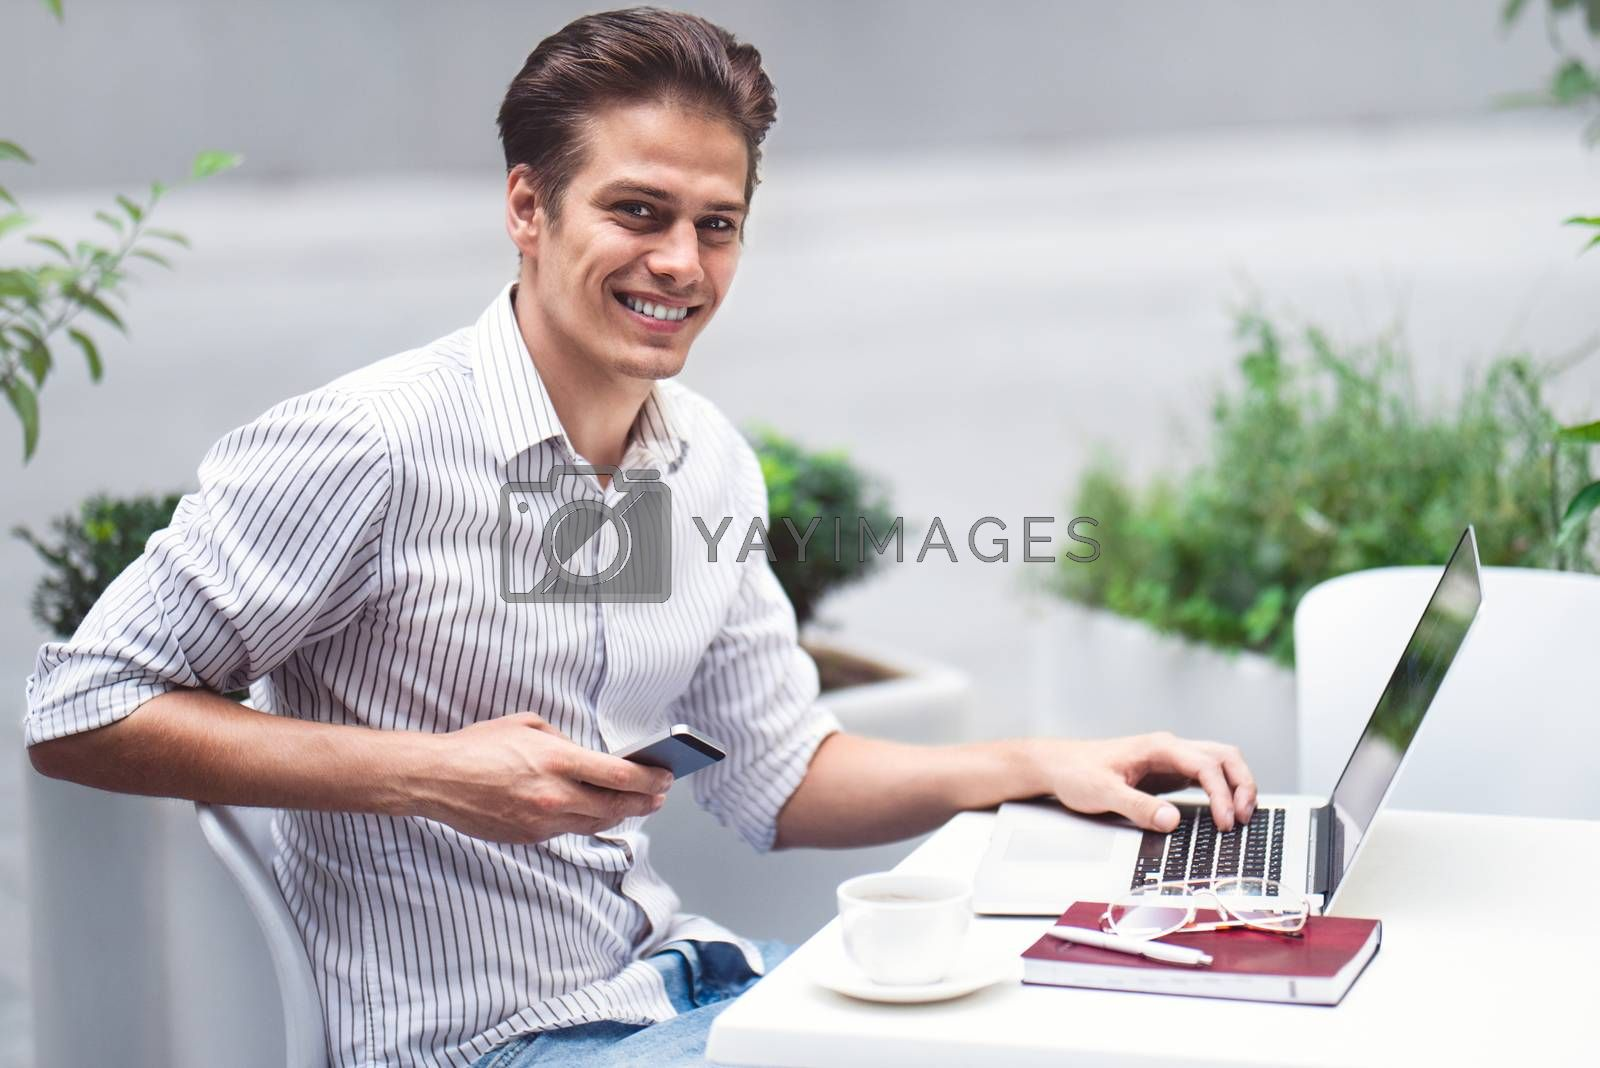 Royalty free image of Attractive businessman using a laptop and smiling while working in cafe. by Nickstock